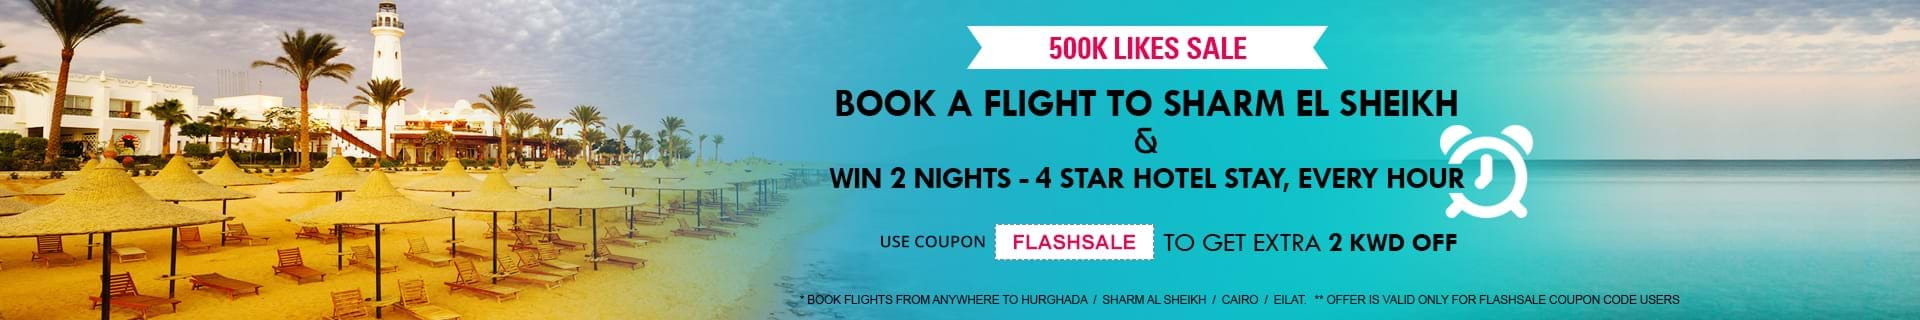 Book flights to Egypt at 2 KWD off and win a hotel stay.Use Code:FLASHSALE